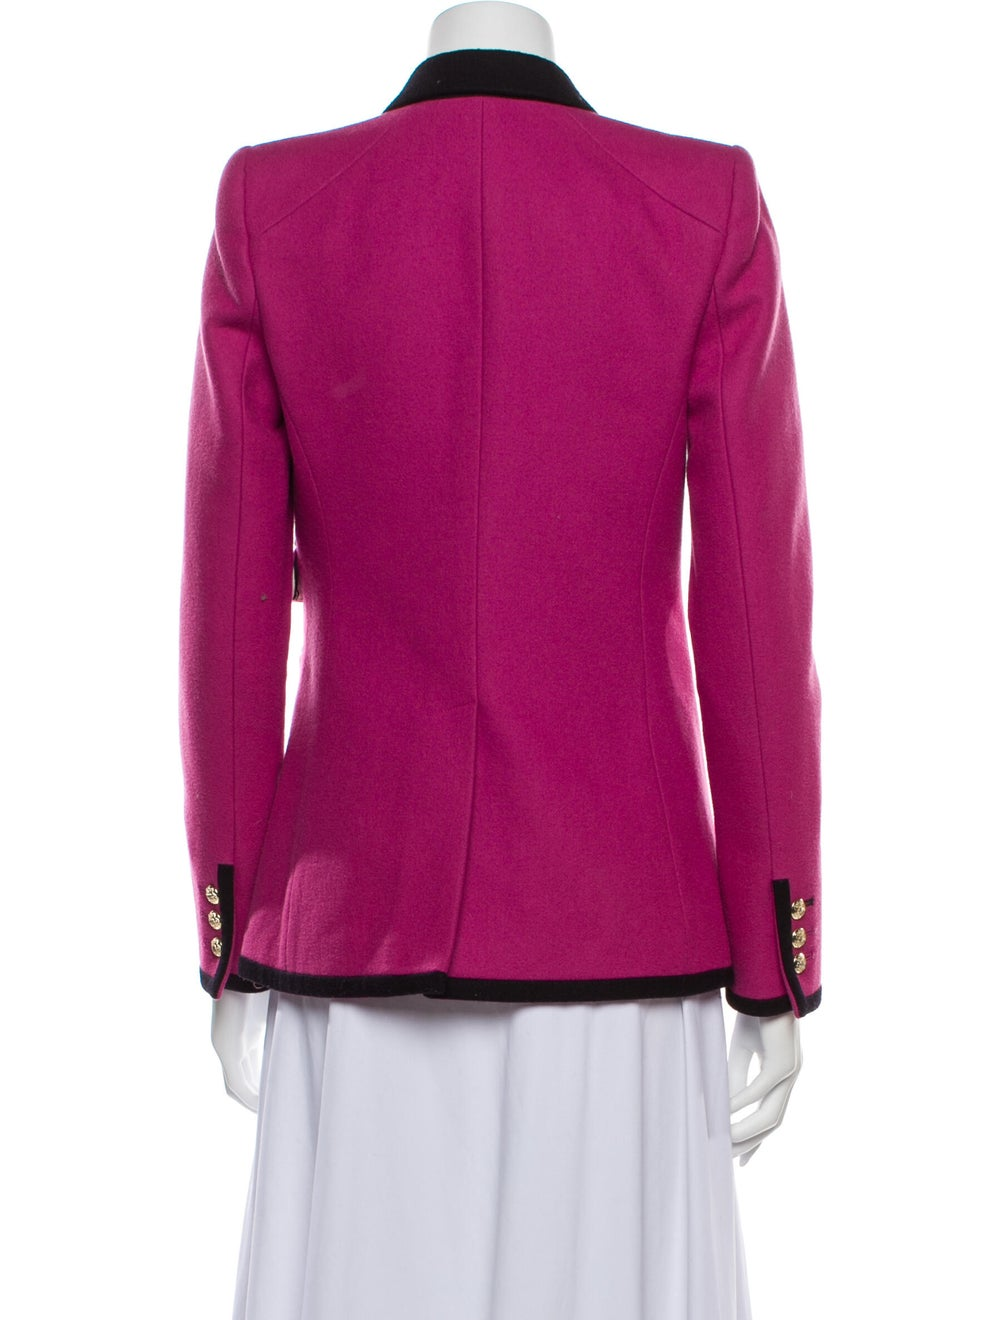 Juicy Couture Blazer Pink - image 3